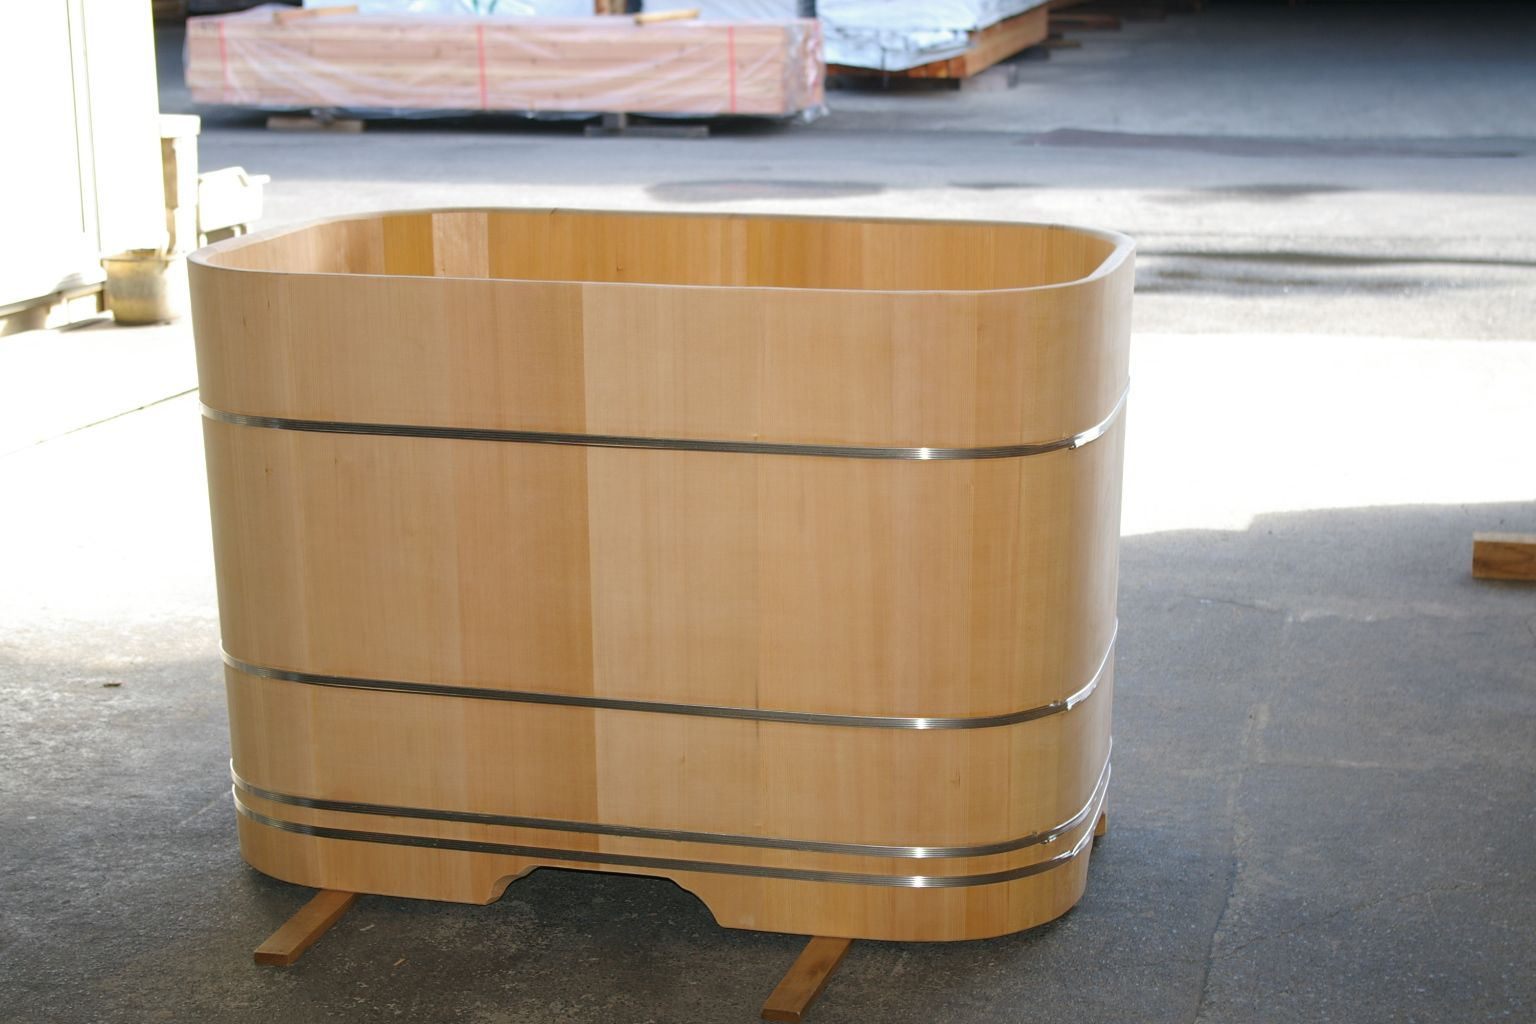 Custom tubs – japanese ofuro bathtubs by bartok design | Dingetjes ...